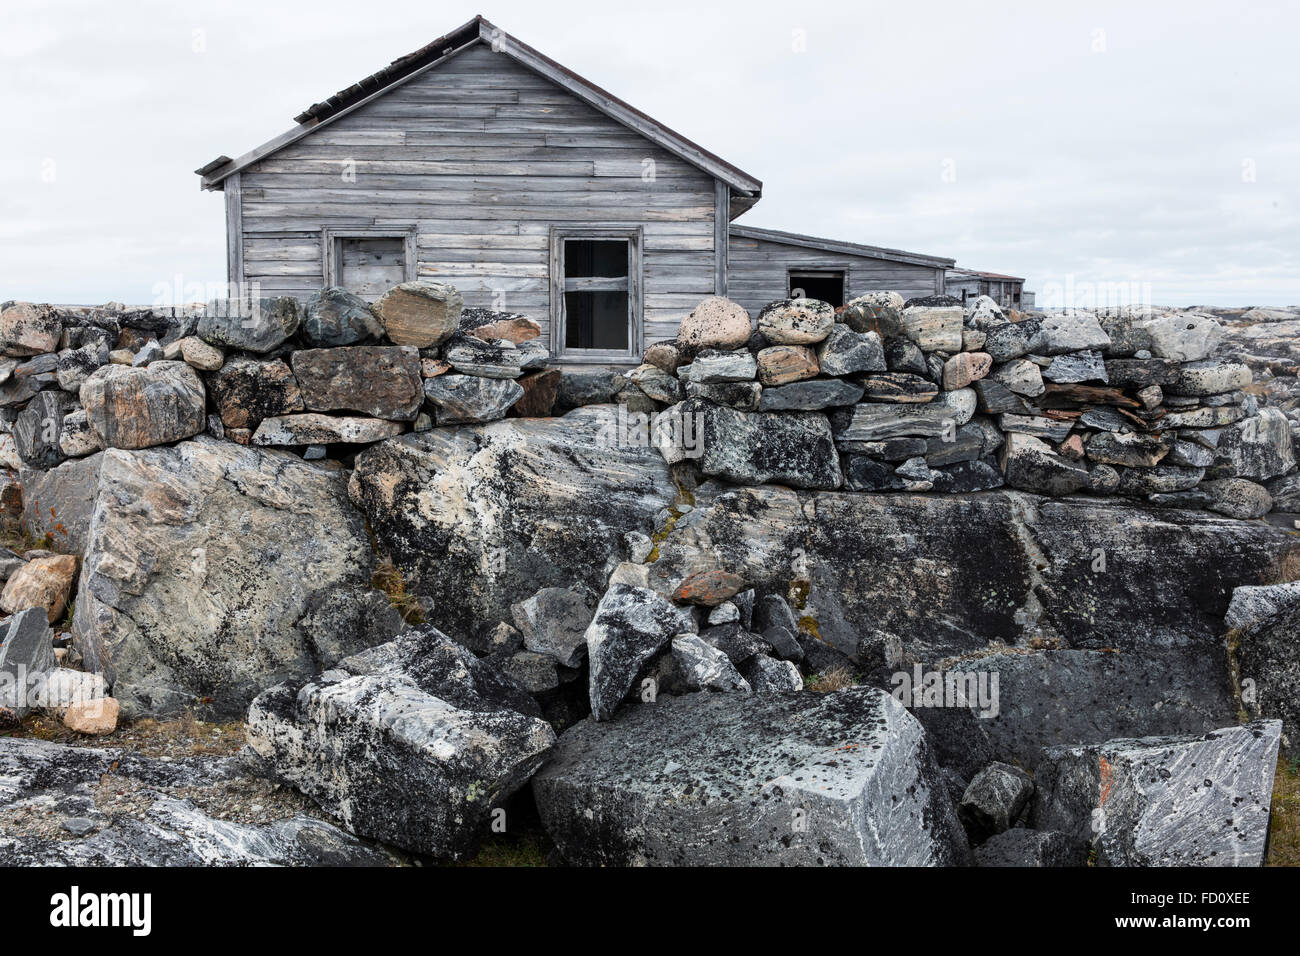 Canada, Nunavut Territory, Abandoned ruins of trading post along west coast of Hudson Bay at Fullerton Harbour - Stock Image